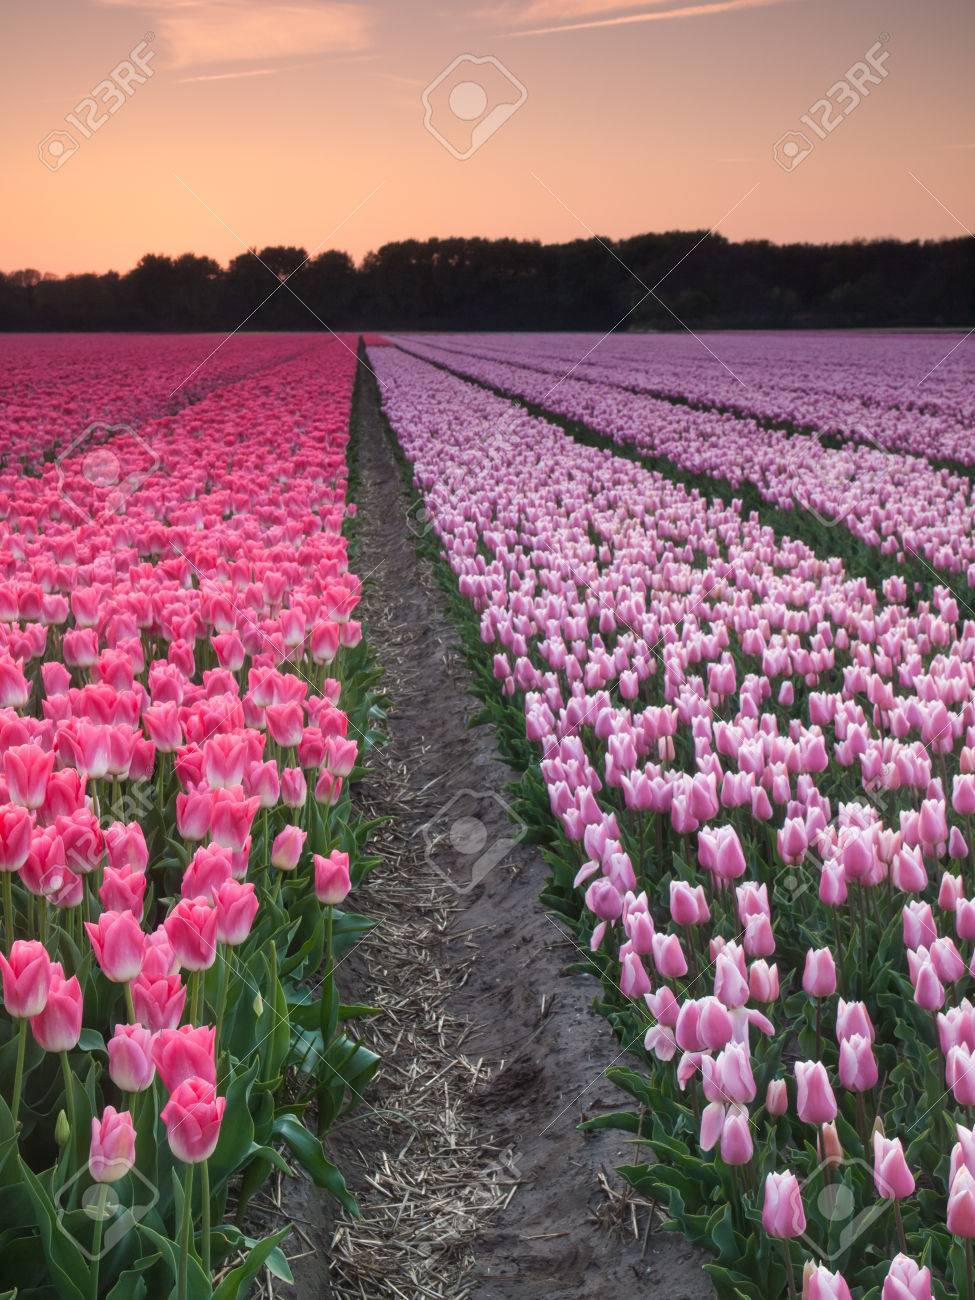 Dutch Flower Field With Rows Of Pink And Purple Tulips At Sundown